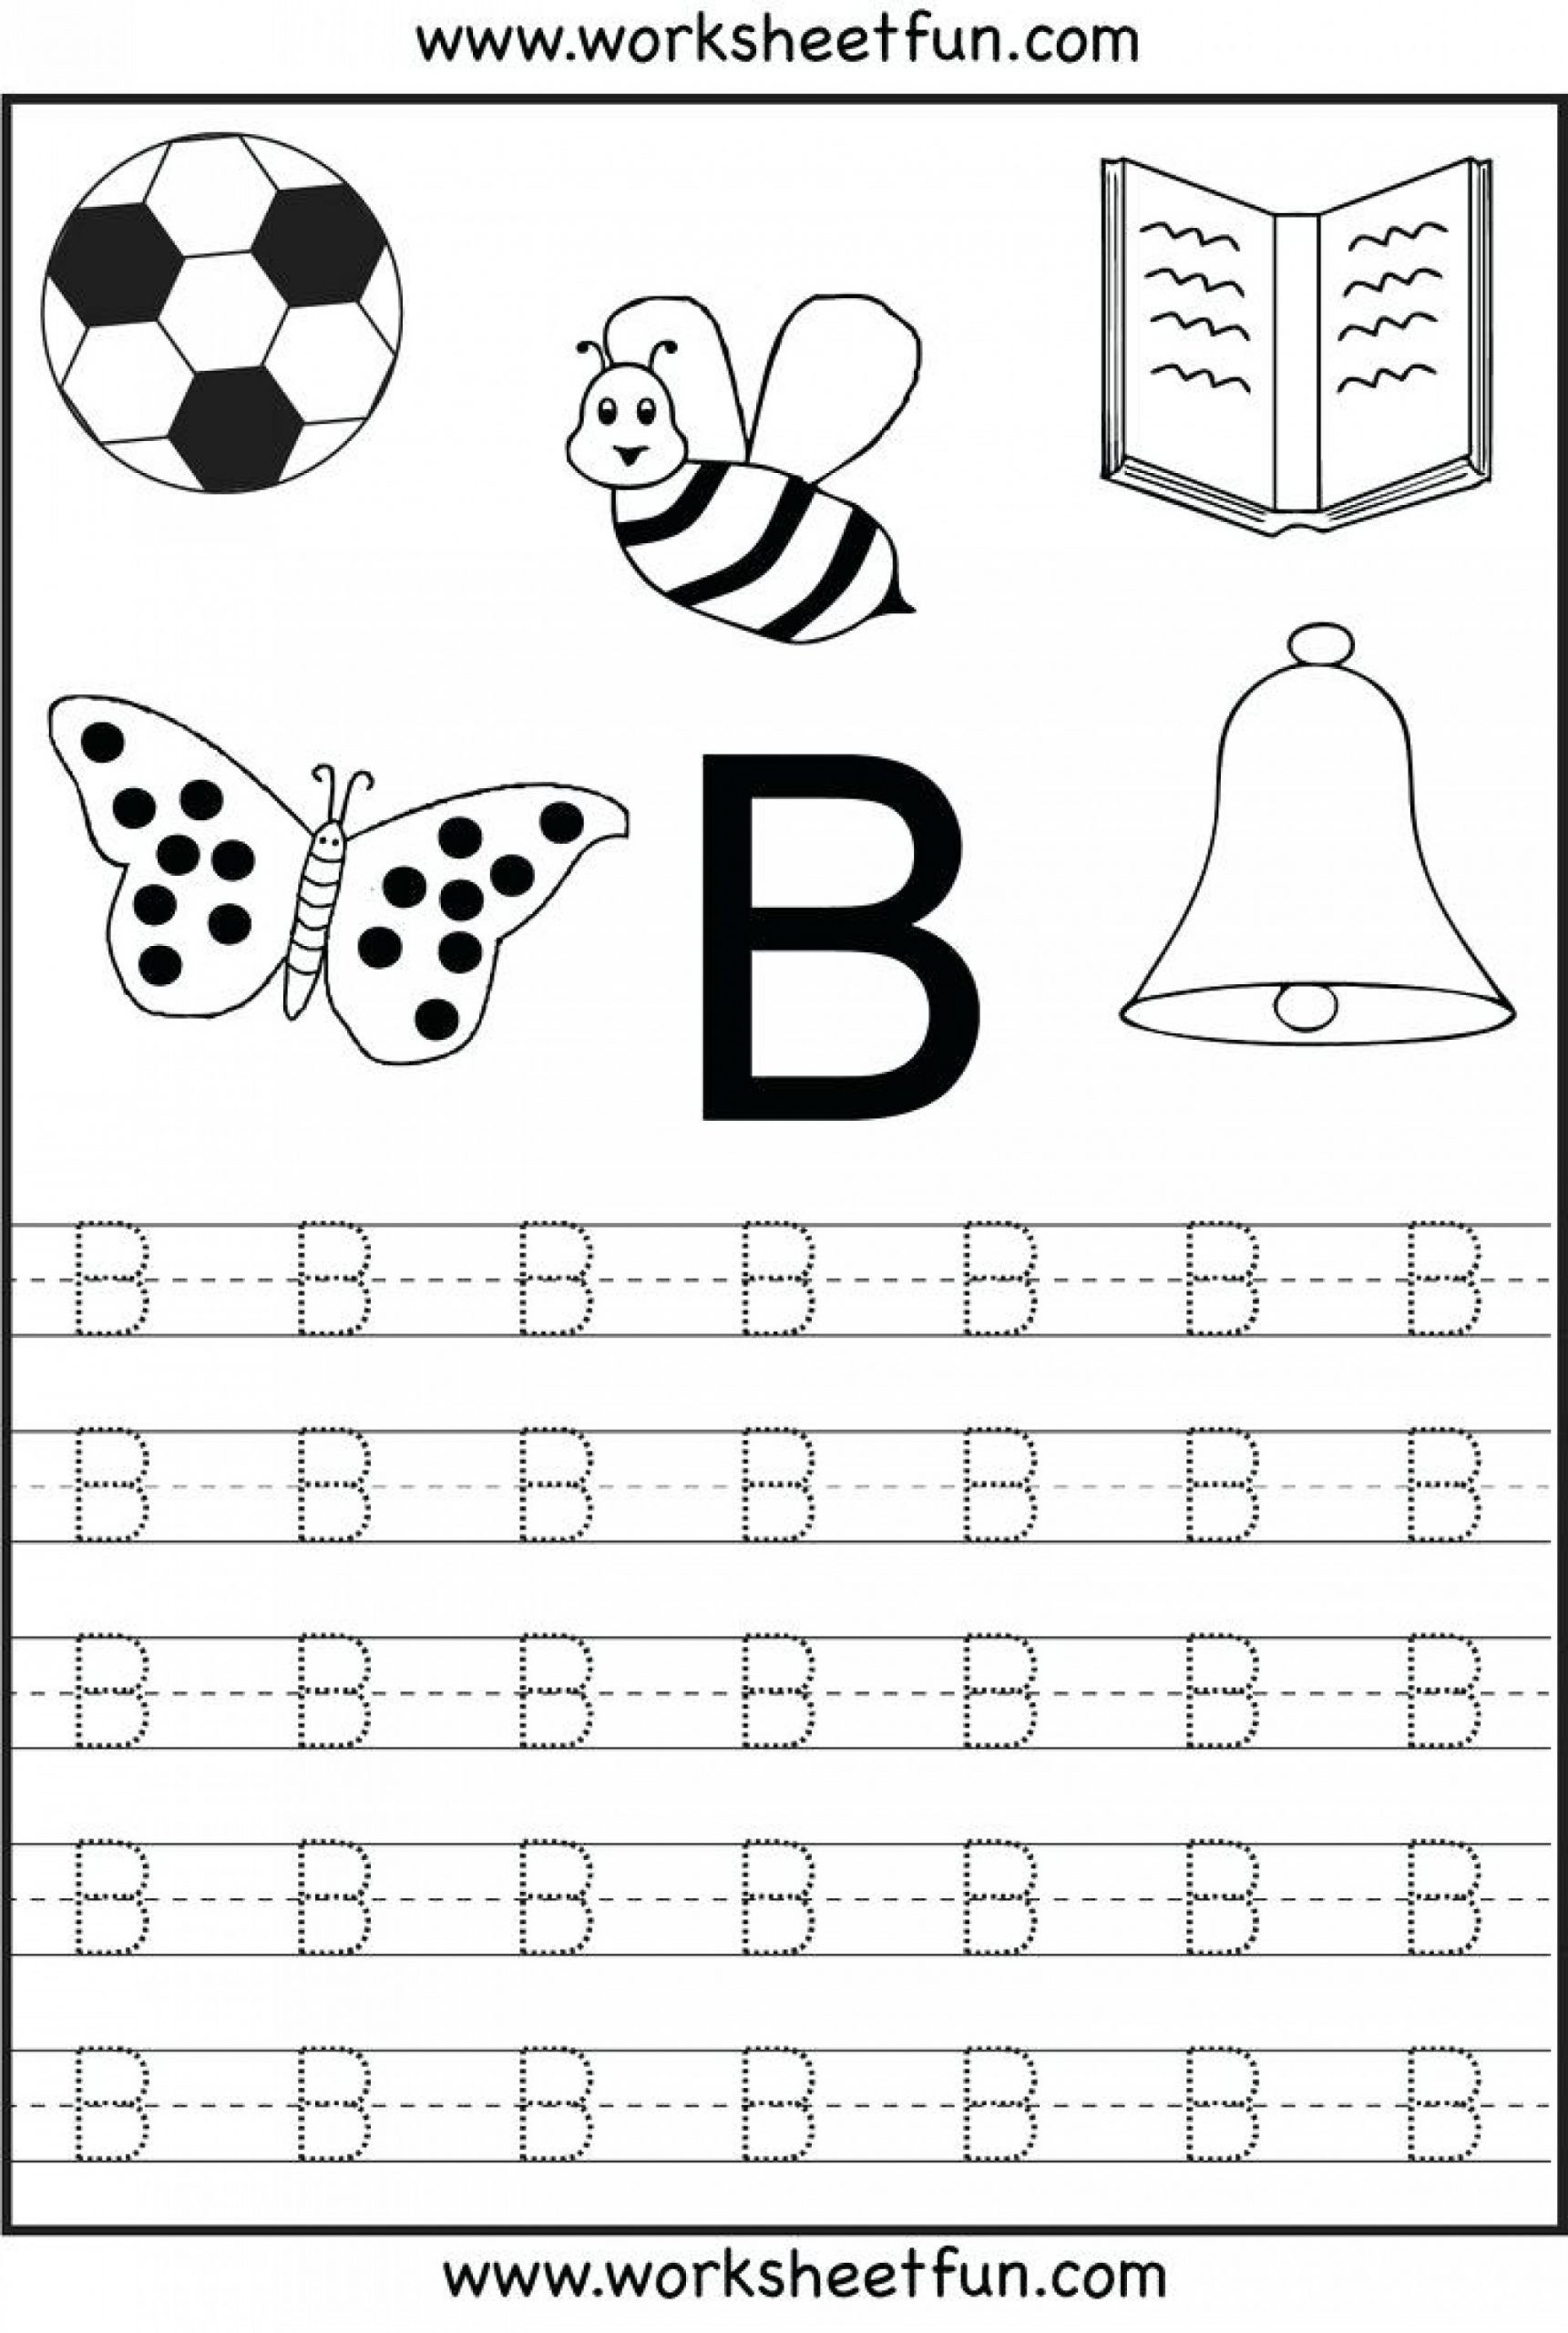 preschool tracing letters freetable worksheets for kindergarten alphabet worksheet free printable worksheetsor printables letter insect art toddlers christmas lesson plans craft scaled